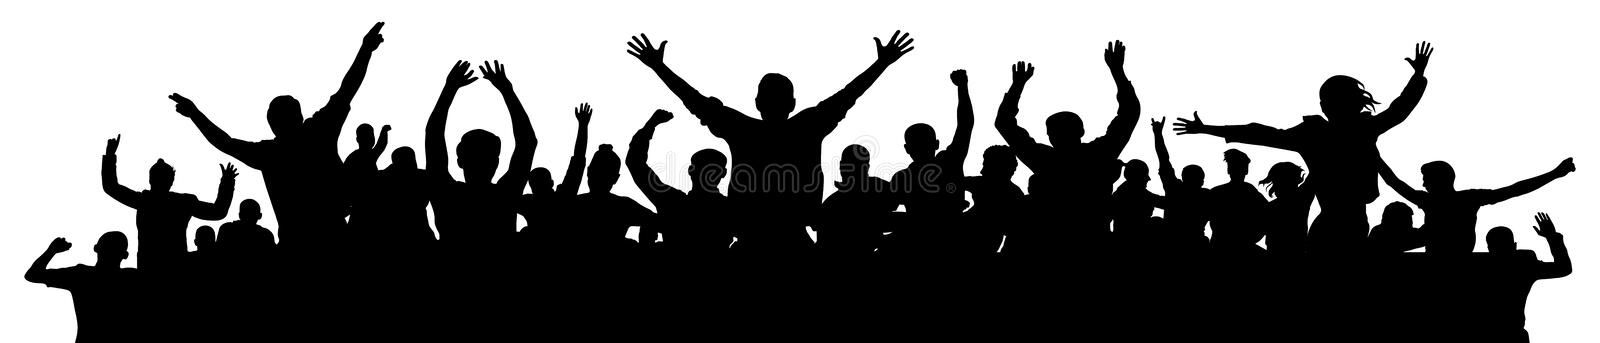 Cheerful people having fun celebrating. Crowd of fun people on party, holiday. Applause people hands up. Emotional event. Silhouette Vector Illustration royalty free illustration